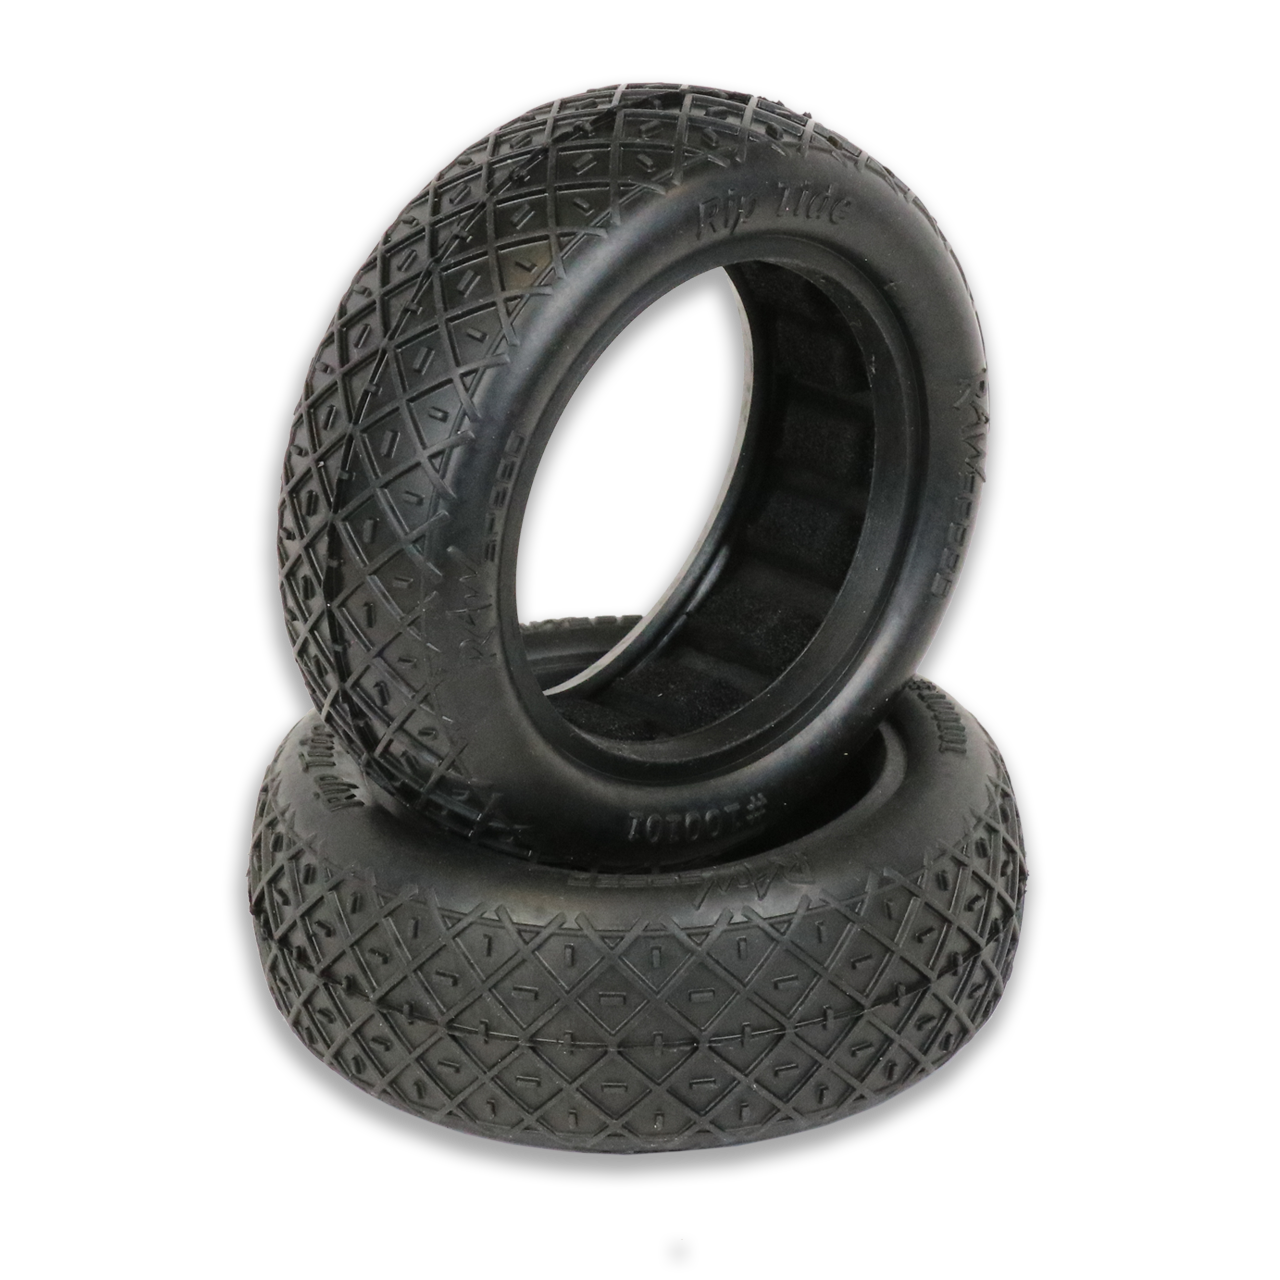 "Raw Speed Rip Tide 2WD Front Buggy Tyres  w/Inserts 2.2"" (1 pr)"